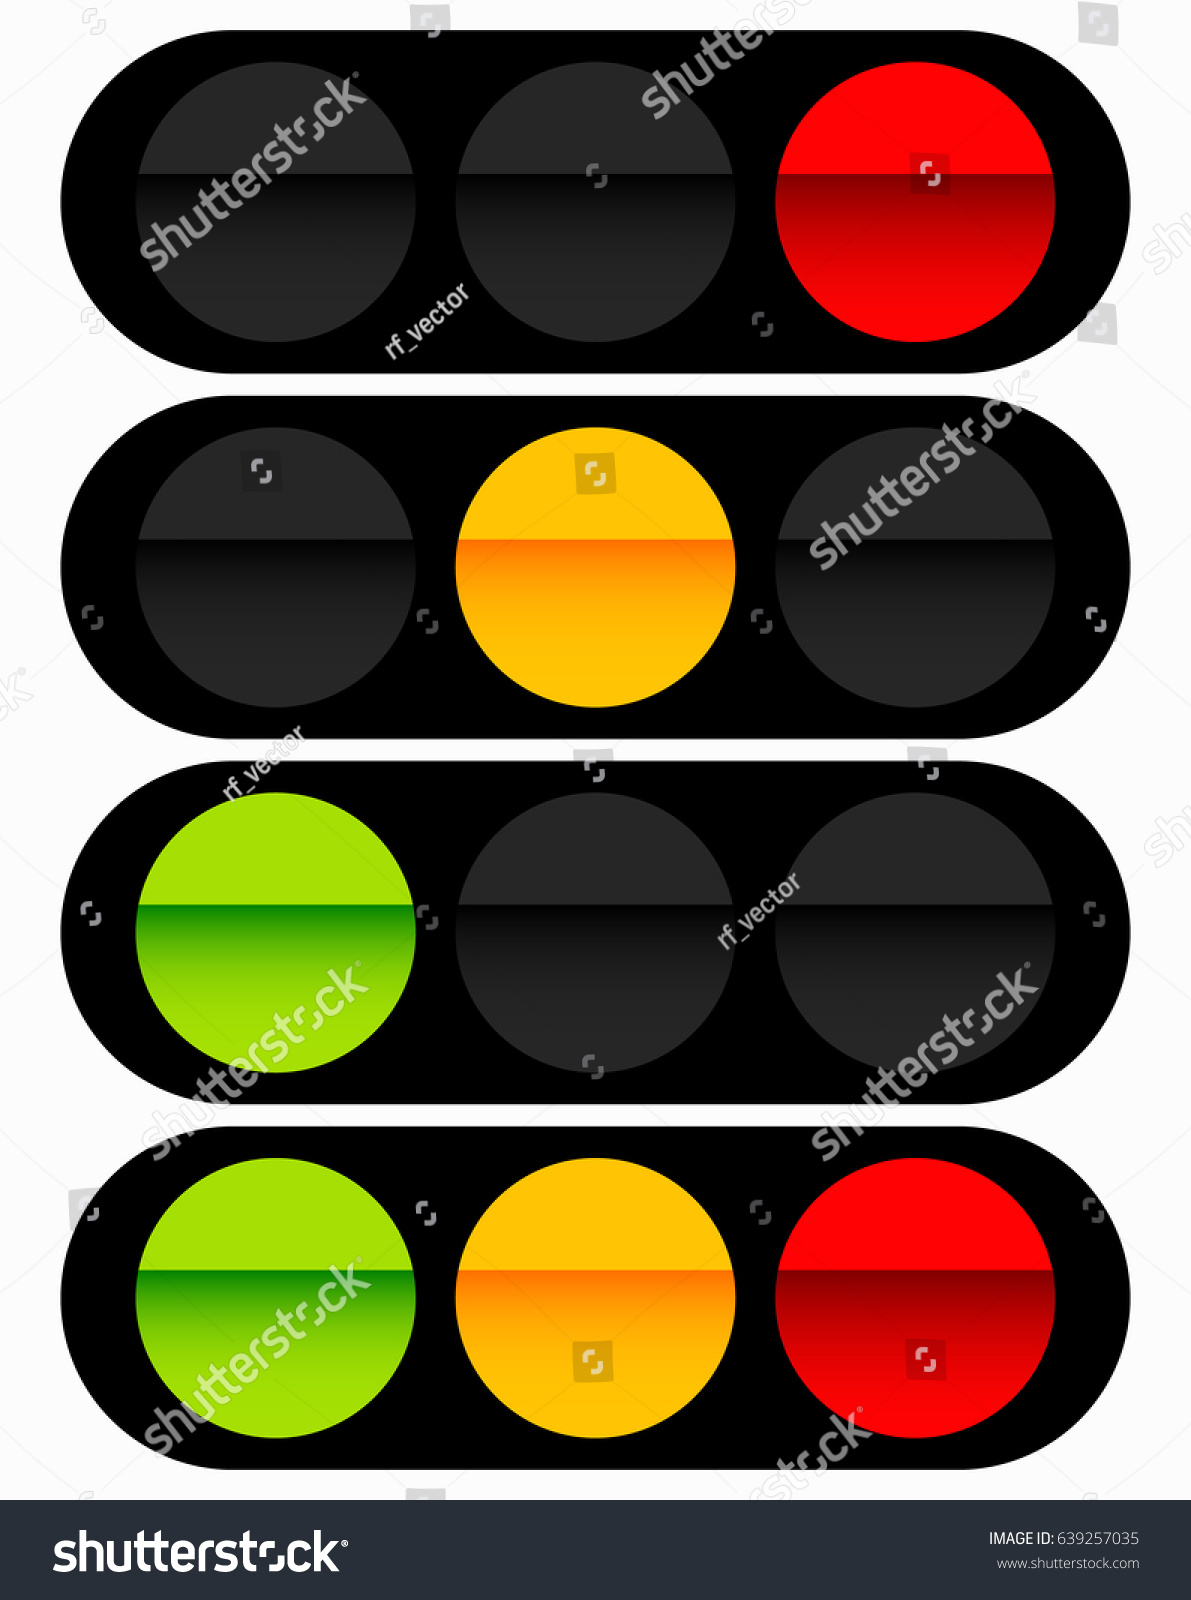 Traffic Light Traffic Lamp Icon Set Stock Vector 639257035 ... for Traffic Light Yellow Icon  588gtk